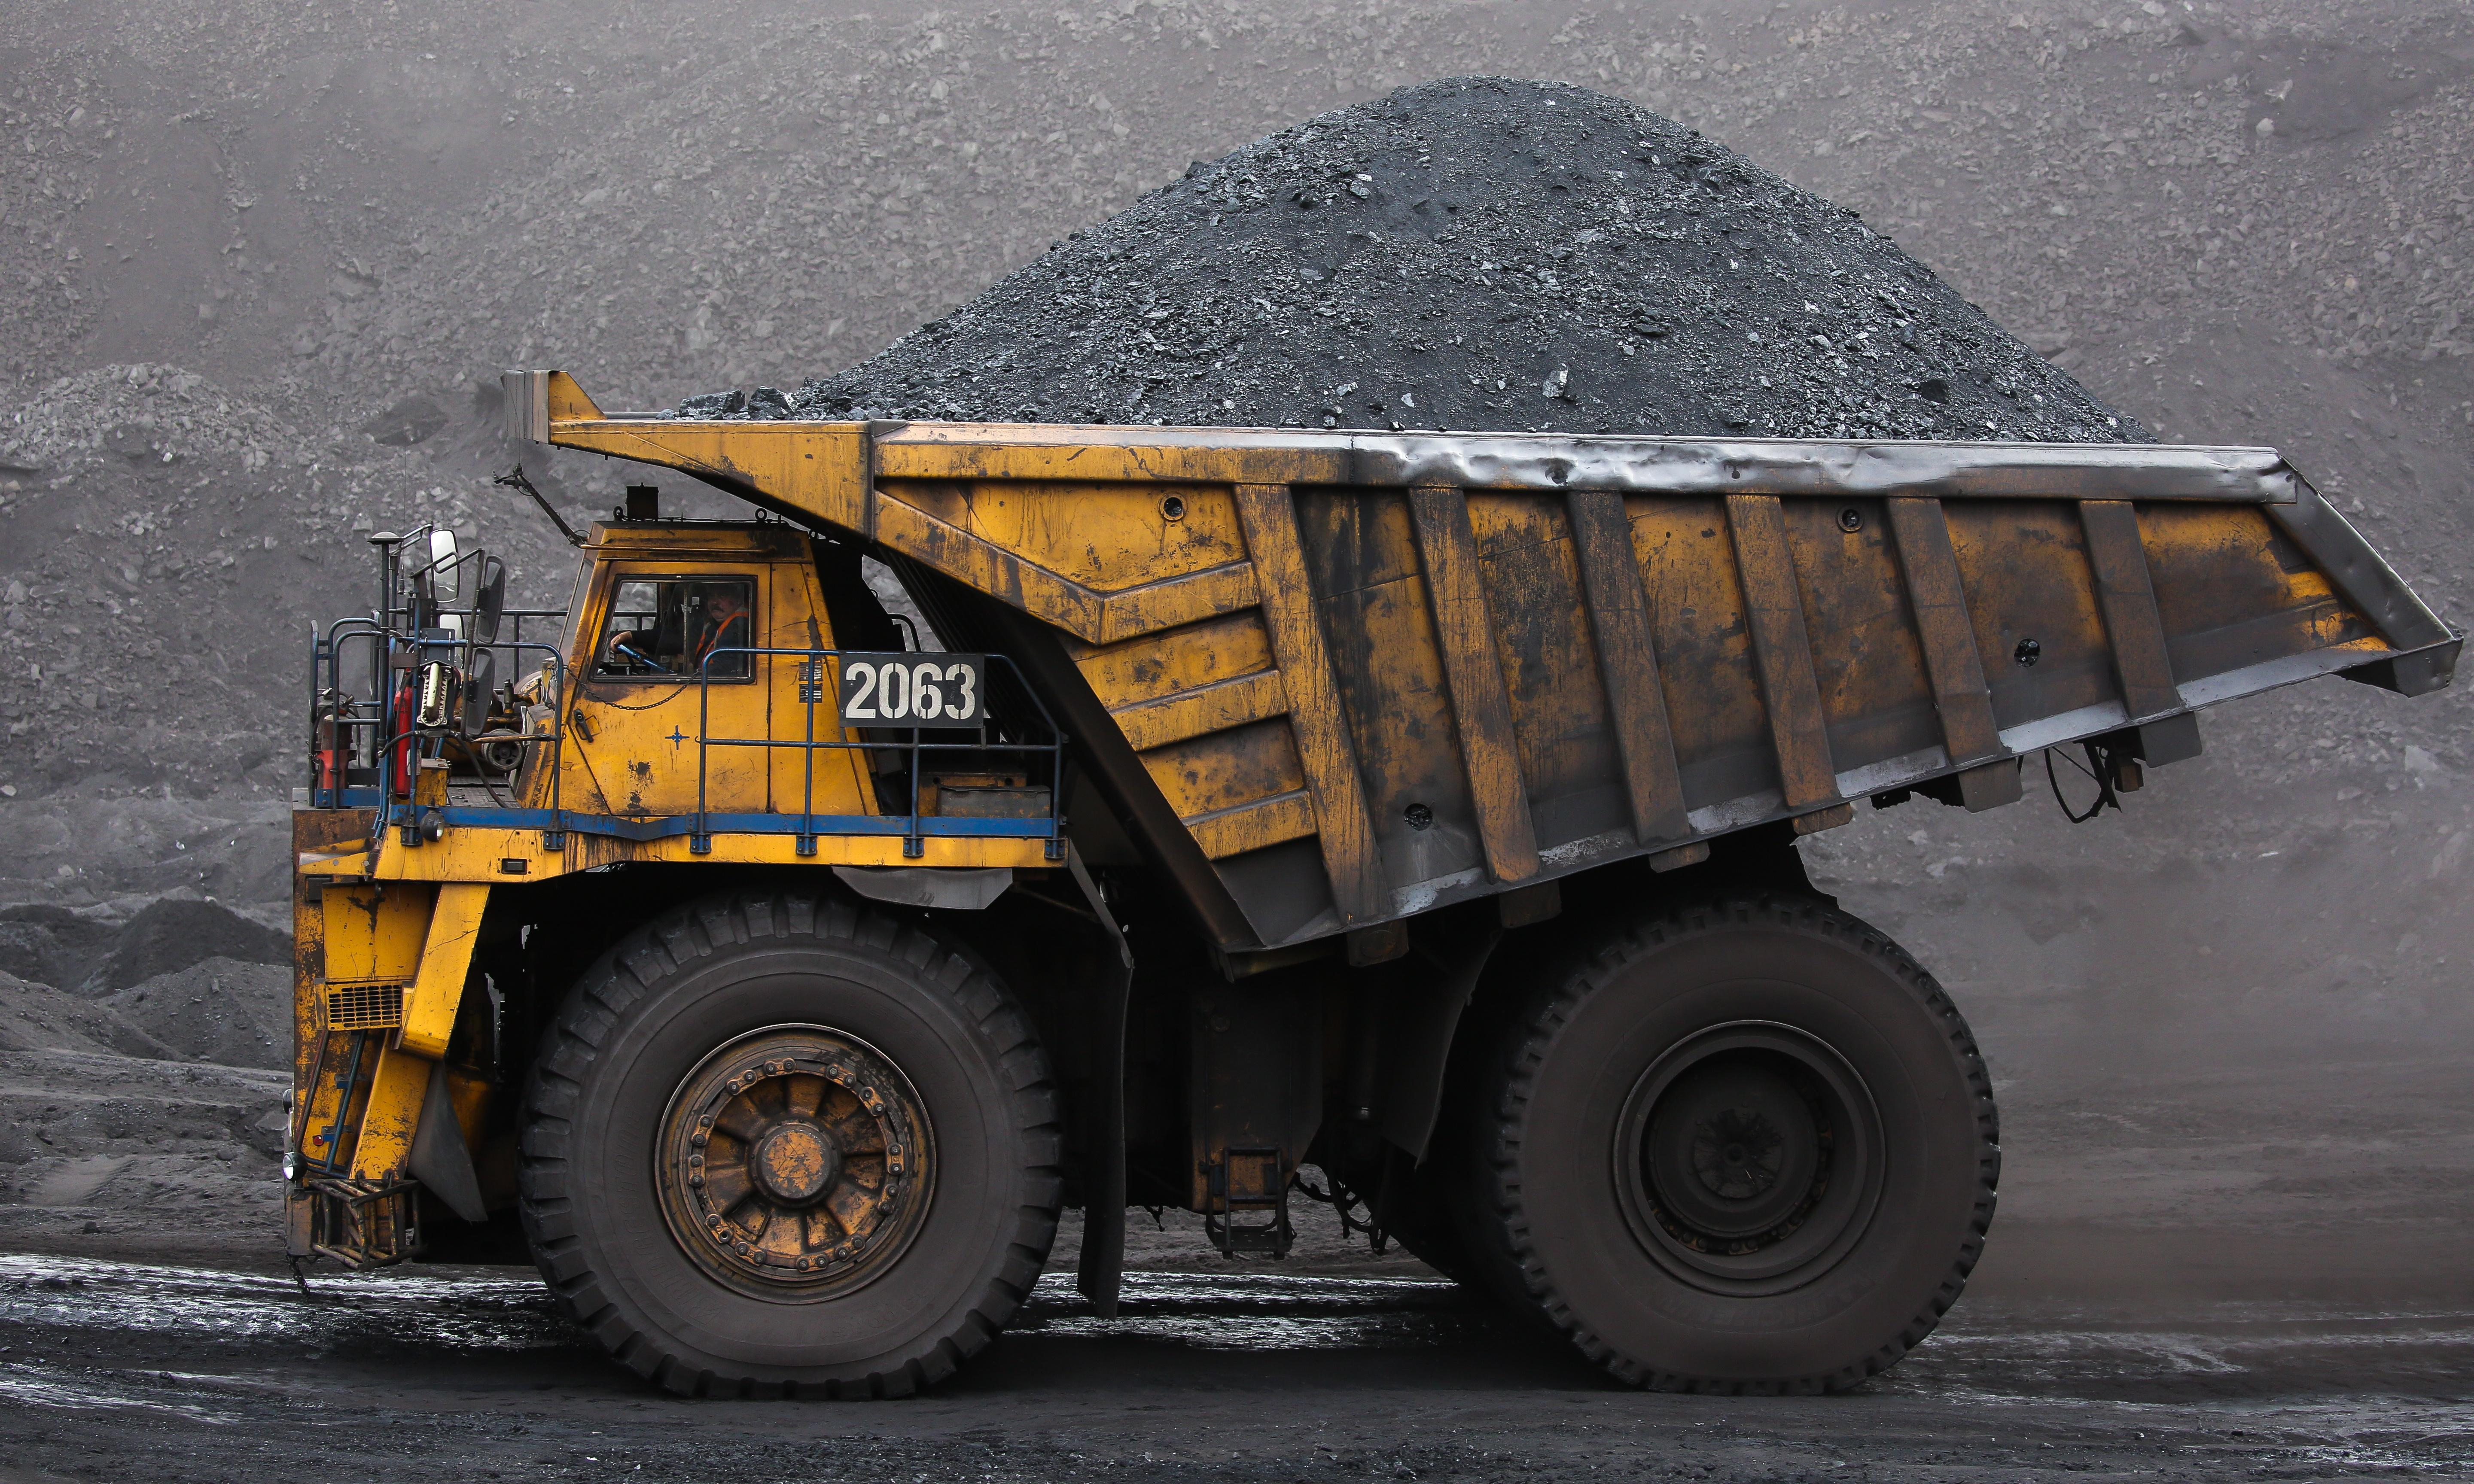 Methane emissions from coalmines could stoke climate crisis – study